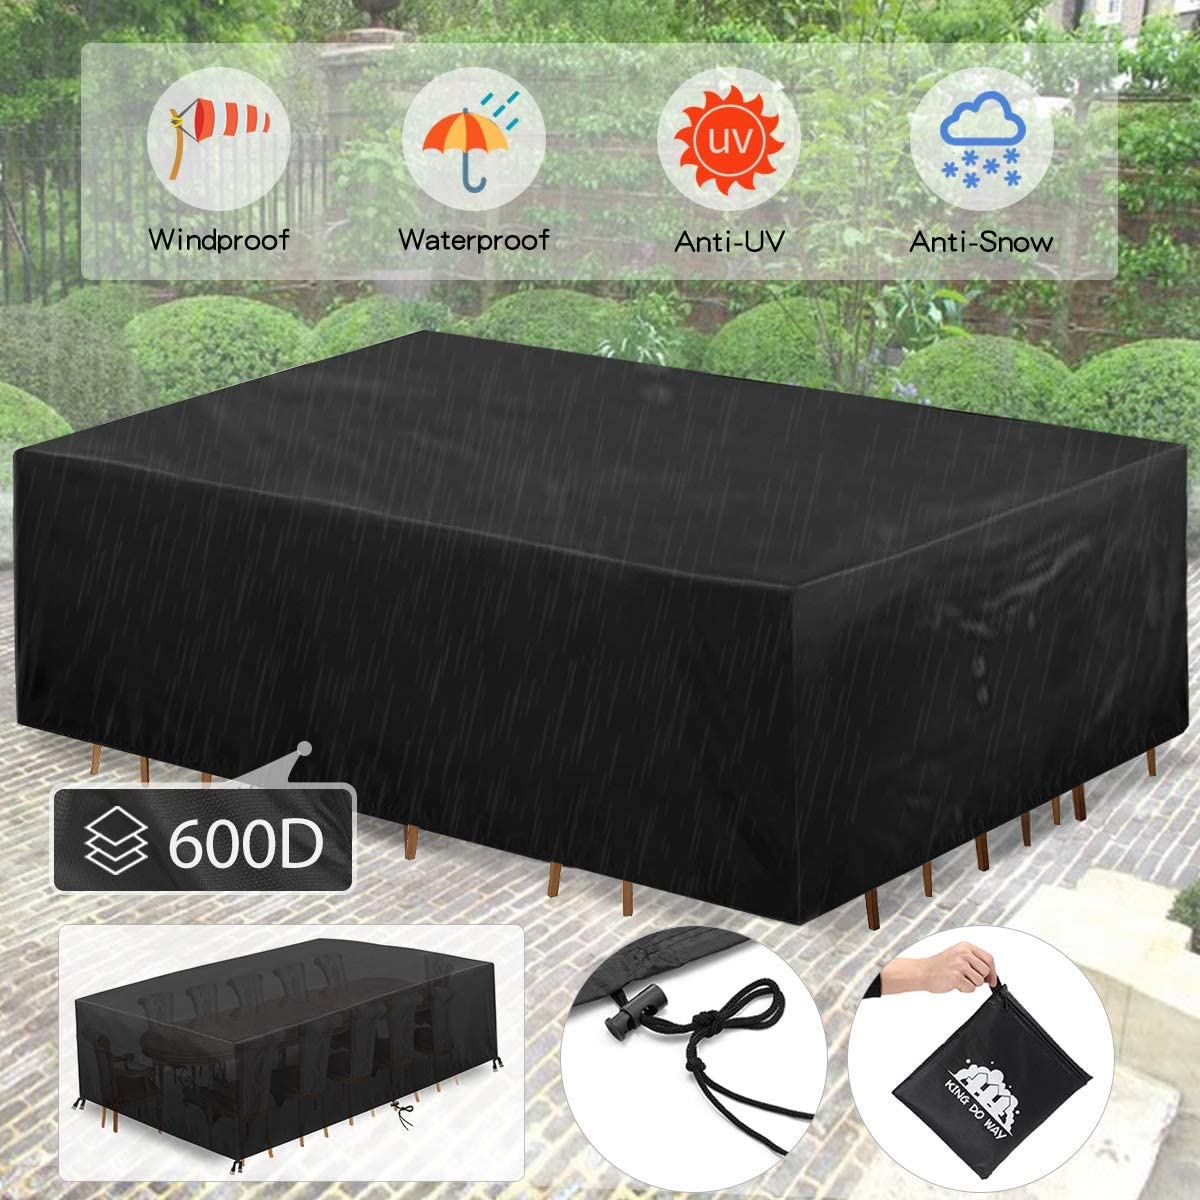 king do approach Outdoor Patio Furniture Covers, Extra Large Patio Furniture Set Covers Waterproof, Anti-UV, Dust-Proof Patio Furniture Covers Fits 12-14Seat 137.8'' X102.4'' X 35.4'' (600D)